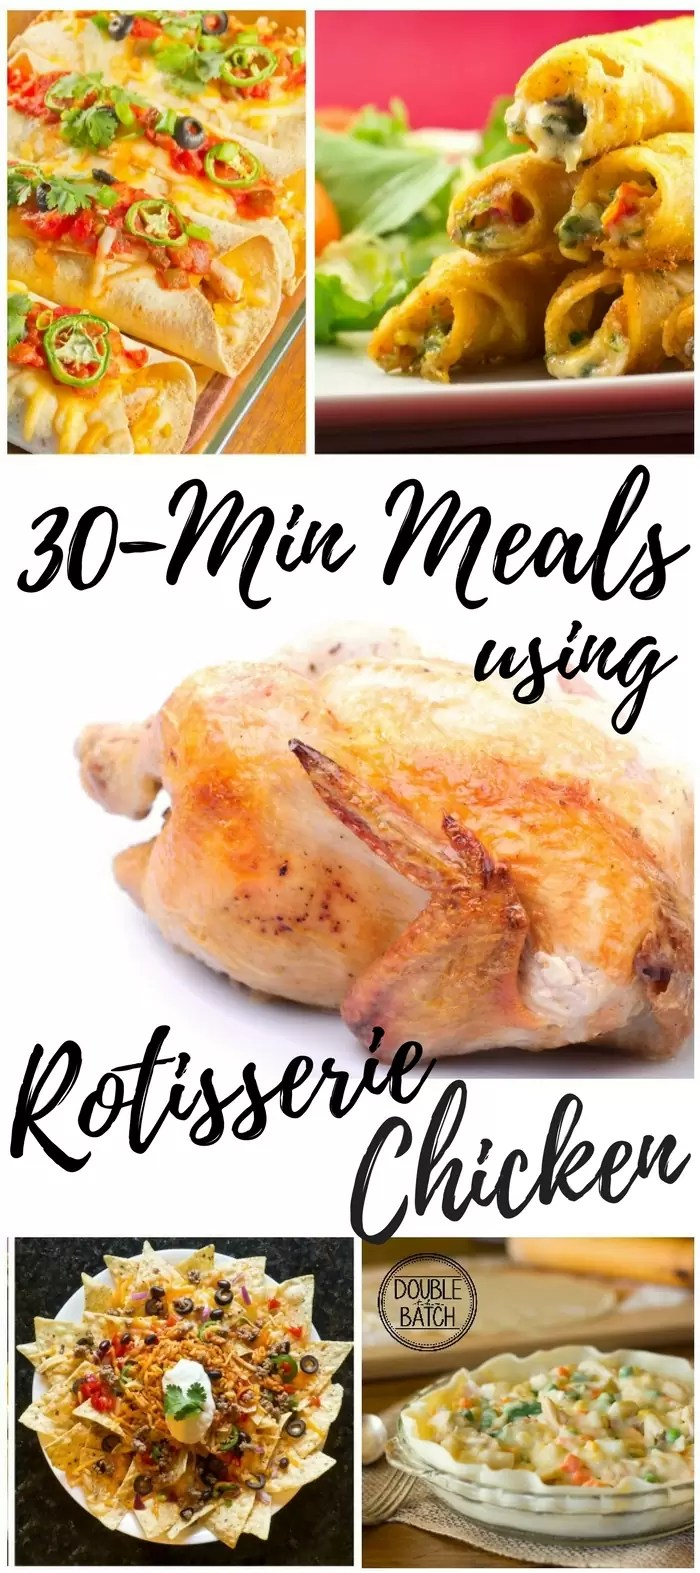 These chicken recipes save my life, and are so easy to use with a store-bought rotissoire chicken!